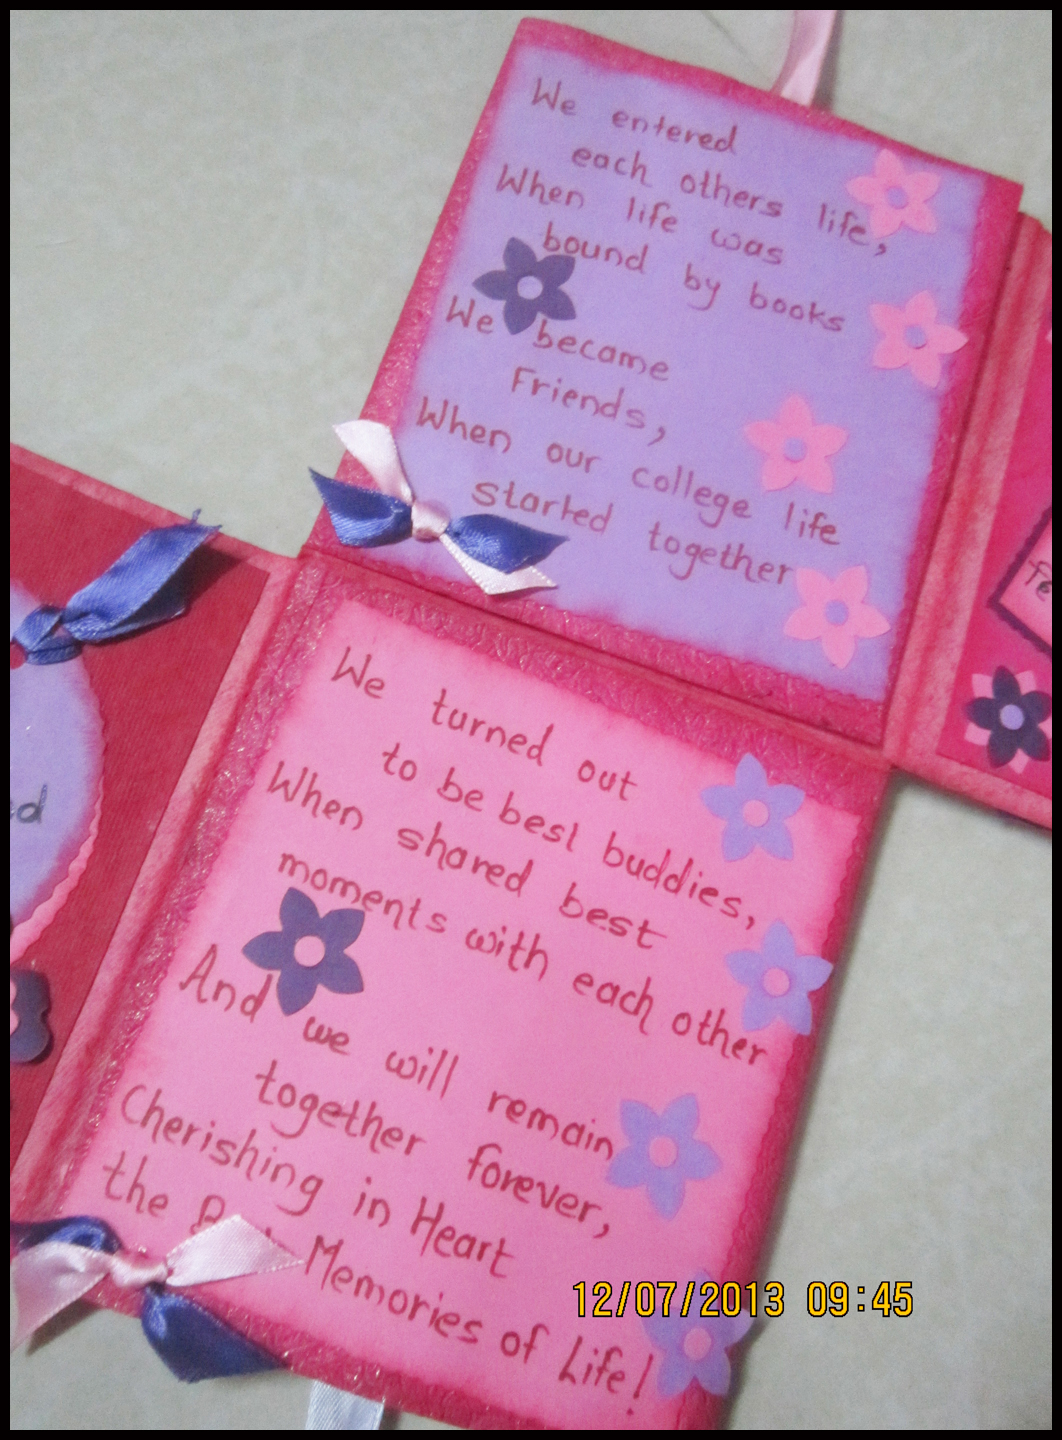 Linas Handmade Cards July 2013 – Creative Birthday Card Messages